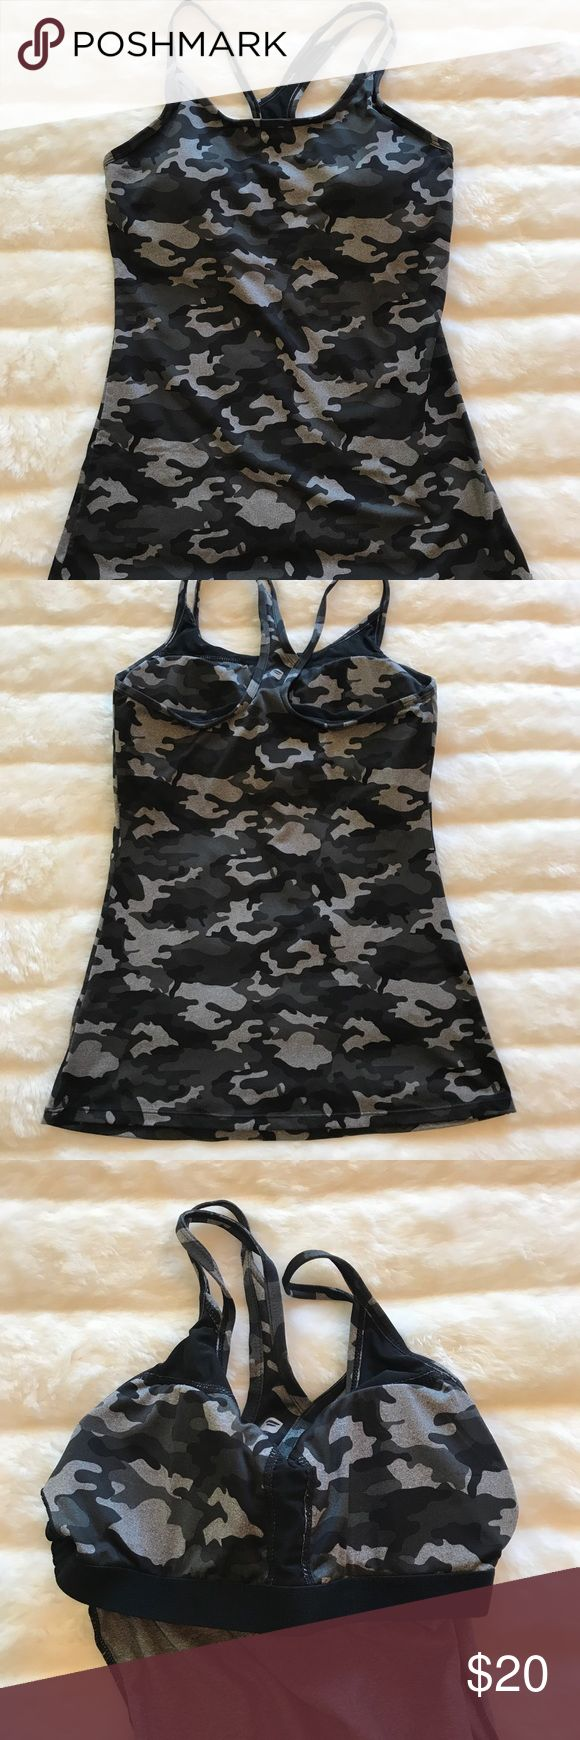 Fabletics Camo Tank EUC. Includes bra pads. Size tag has been removed but it is an XS. Fabletics Tops Tank Tops